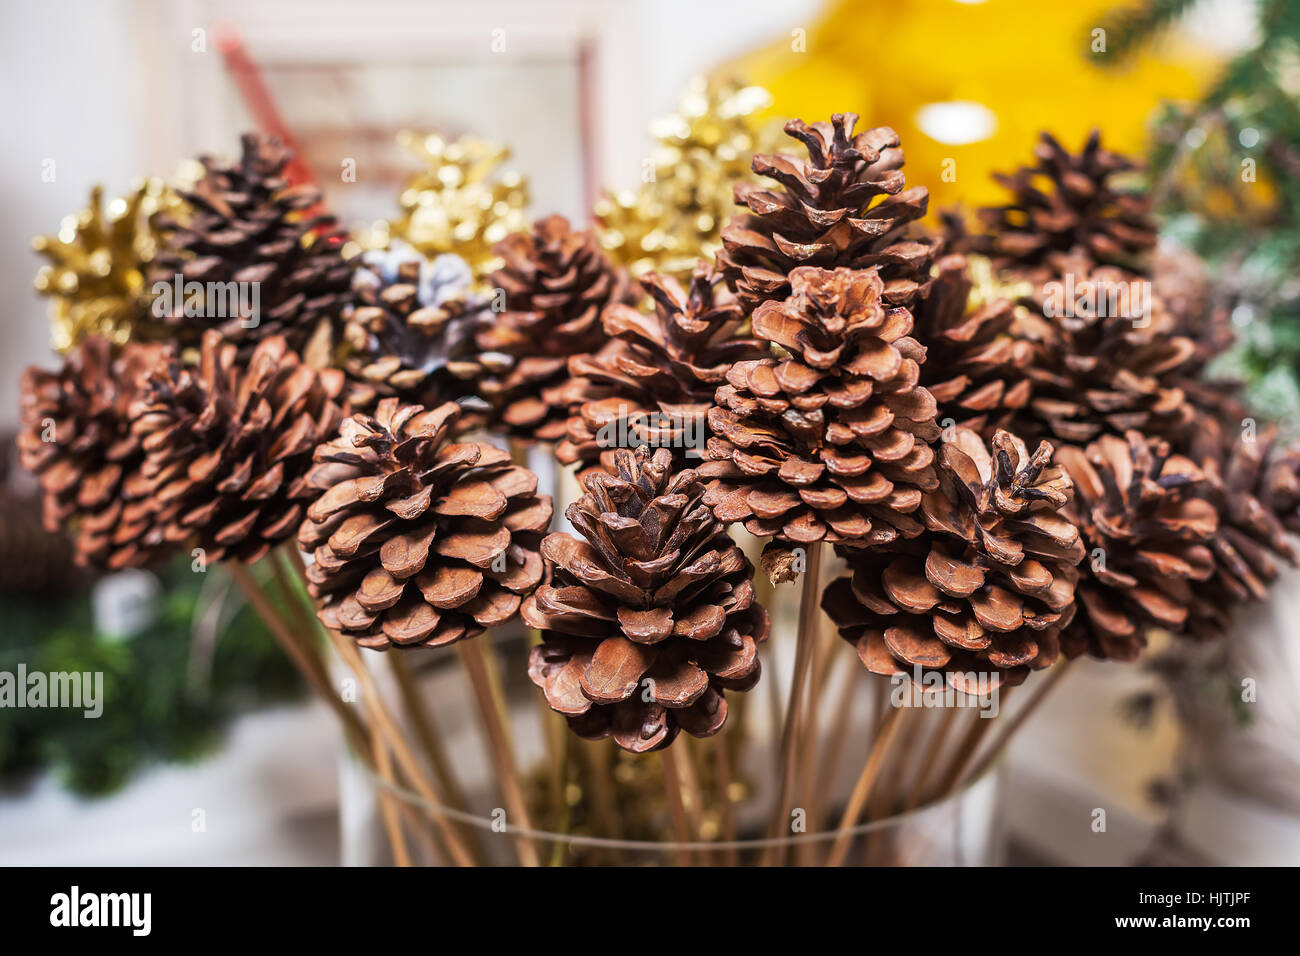 Buds On Sticks In A Glass Vase Interior Home Decor Stock Photo